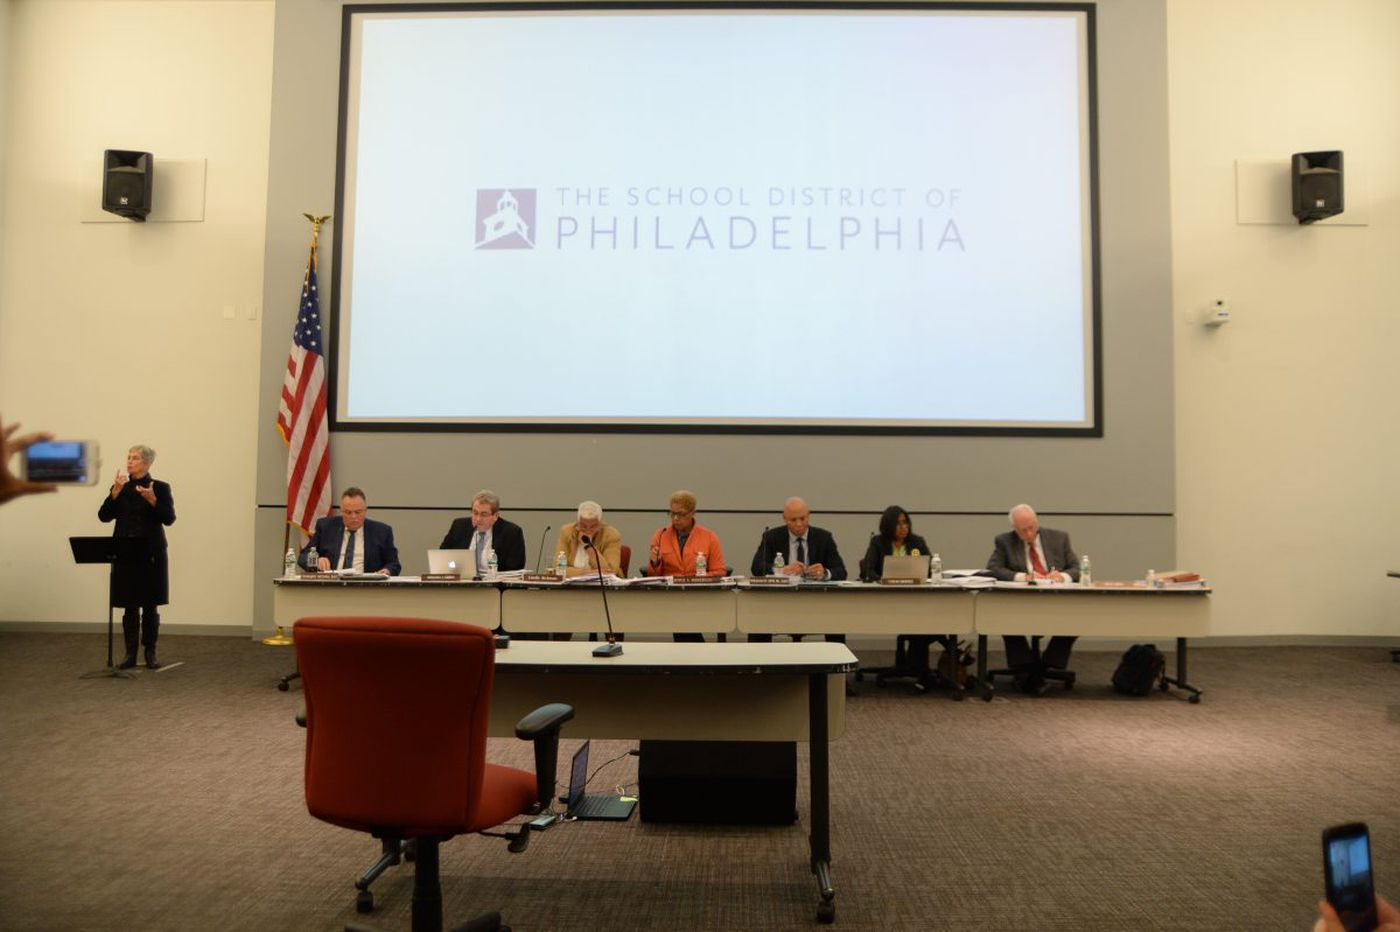 Philly schools no longer distressed, top officials say: Harrisburg signs off on SRC dissolution